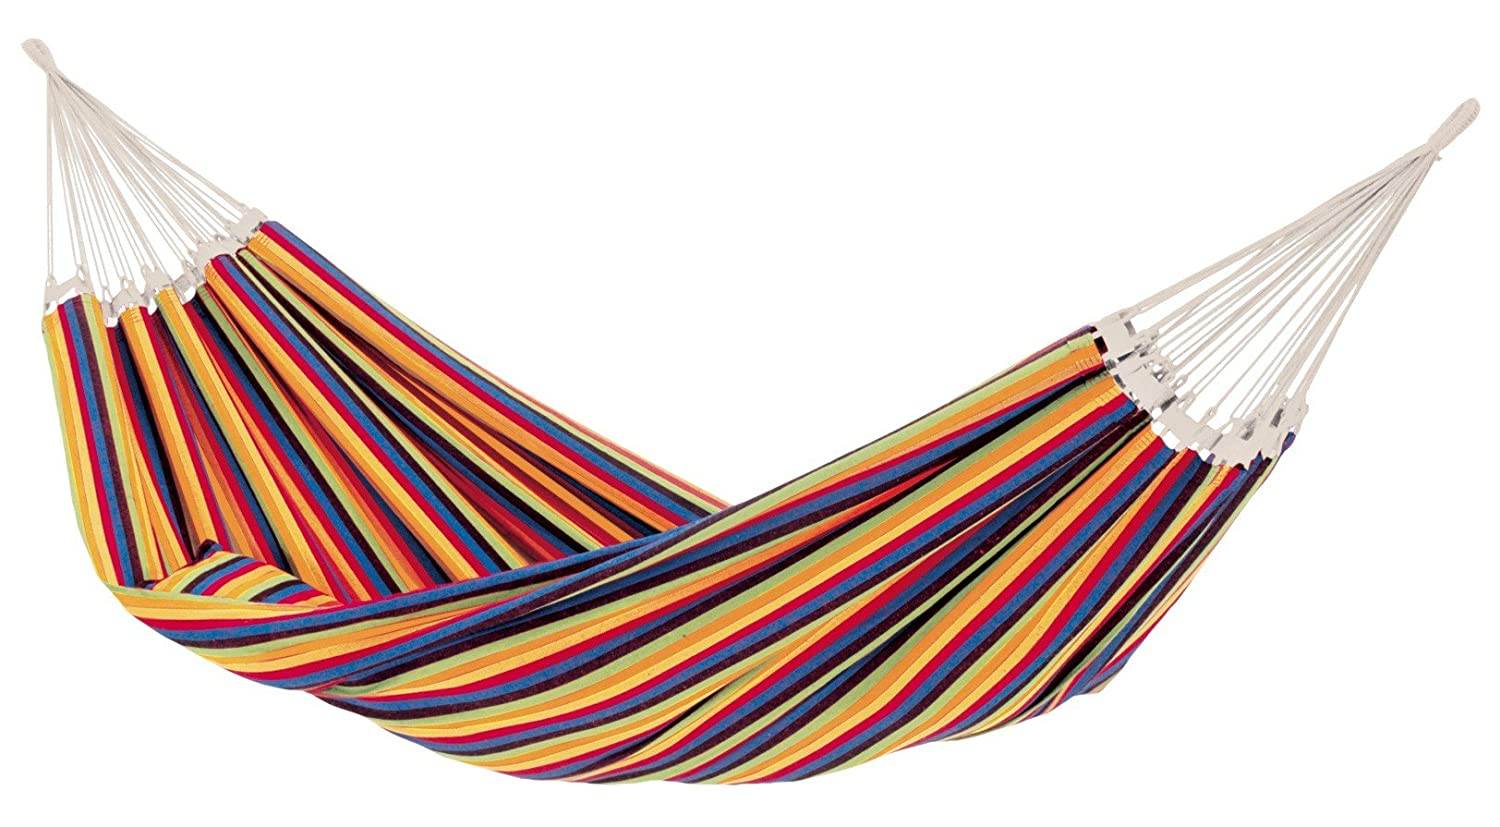 BYER OF MAINE Paradiso Hammock, Handwoven, Polyester Cotton Blend, Tropical, Double, 142 L x 68 W, Holds up to 400lbs